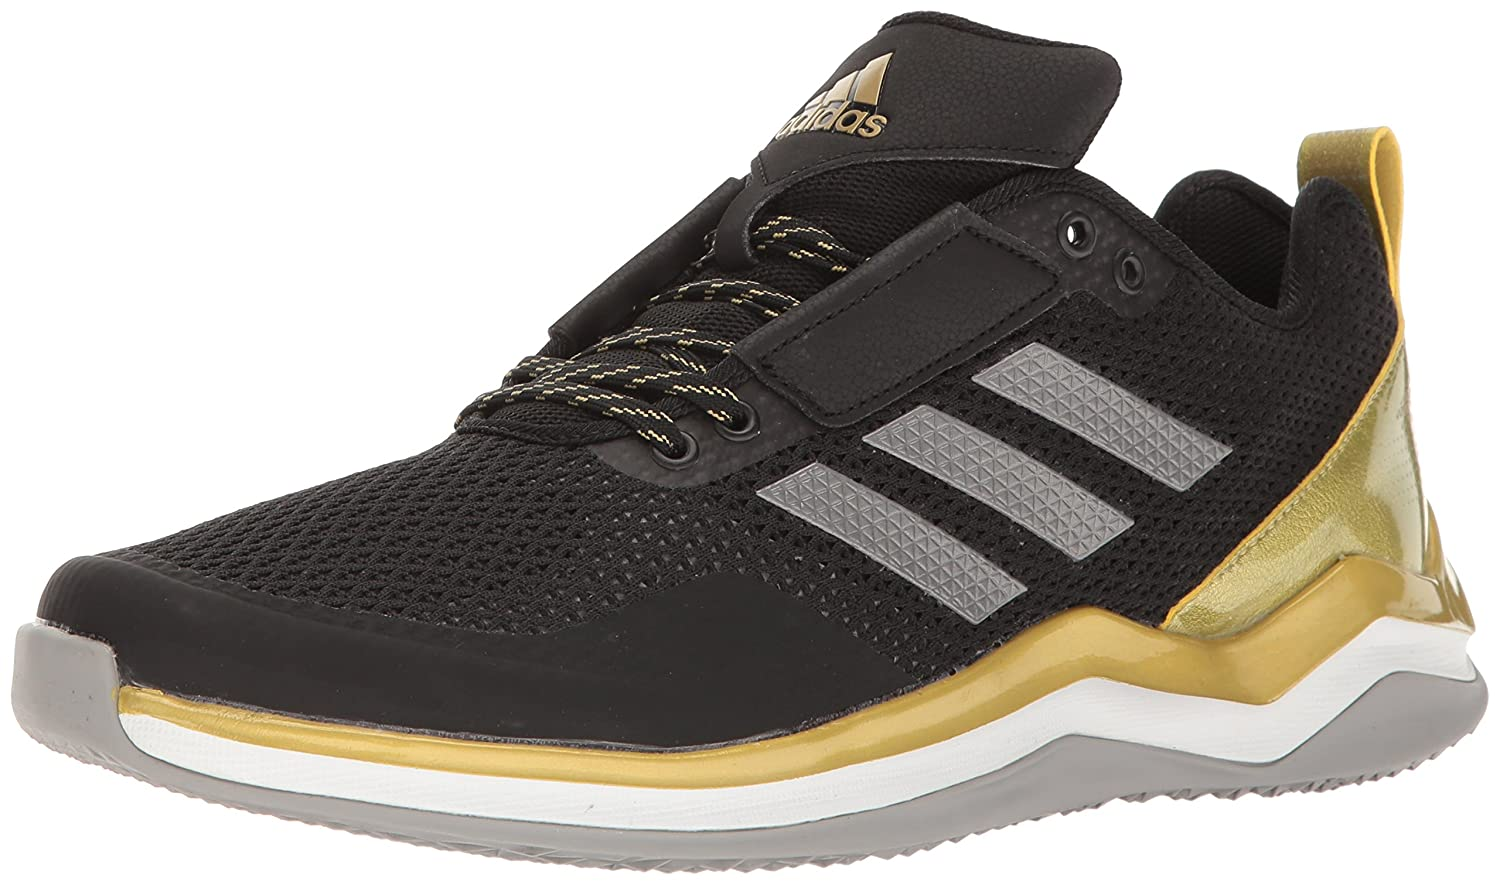 adidas メンズ Speed Trainer 3.0 B01M07VDRG 5.5 D(M) US|Black/Iron/Metallic Gold Black/Iron/Metallic Gold 5.5 D(M) US